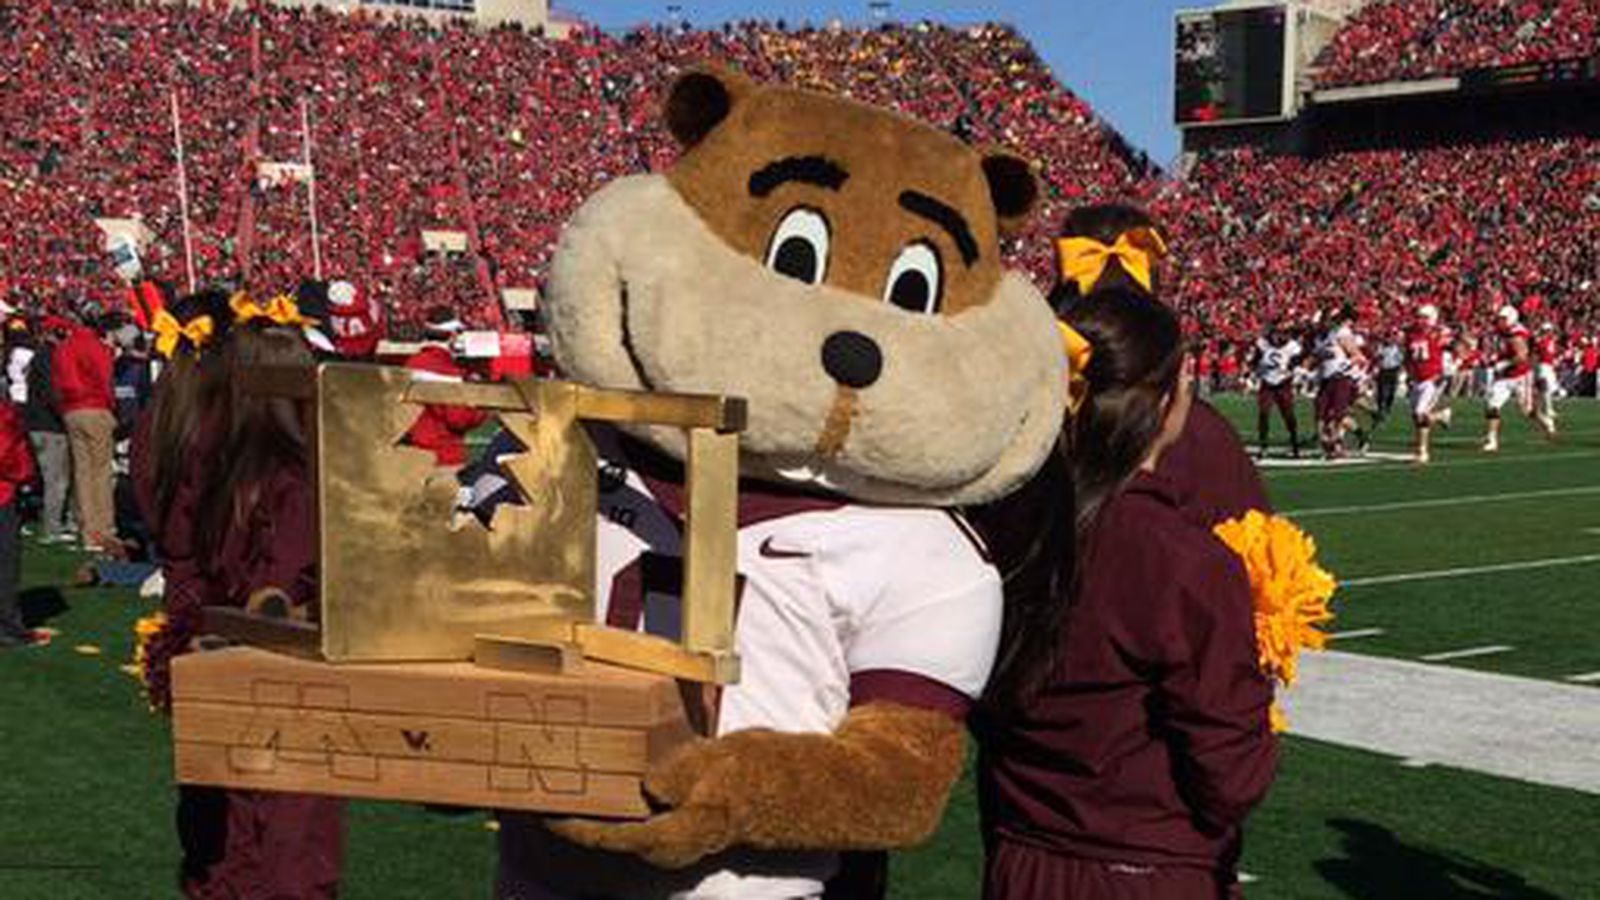 The Internet Made A Minnesota Nebraska Rivalry Trophy